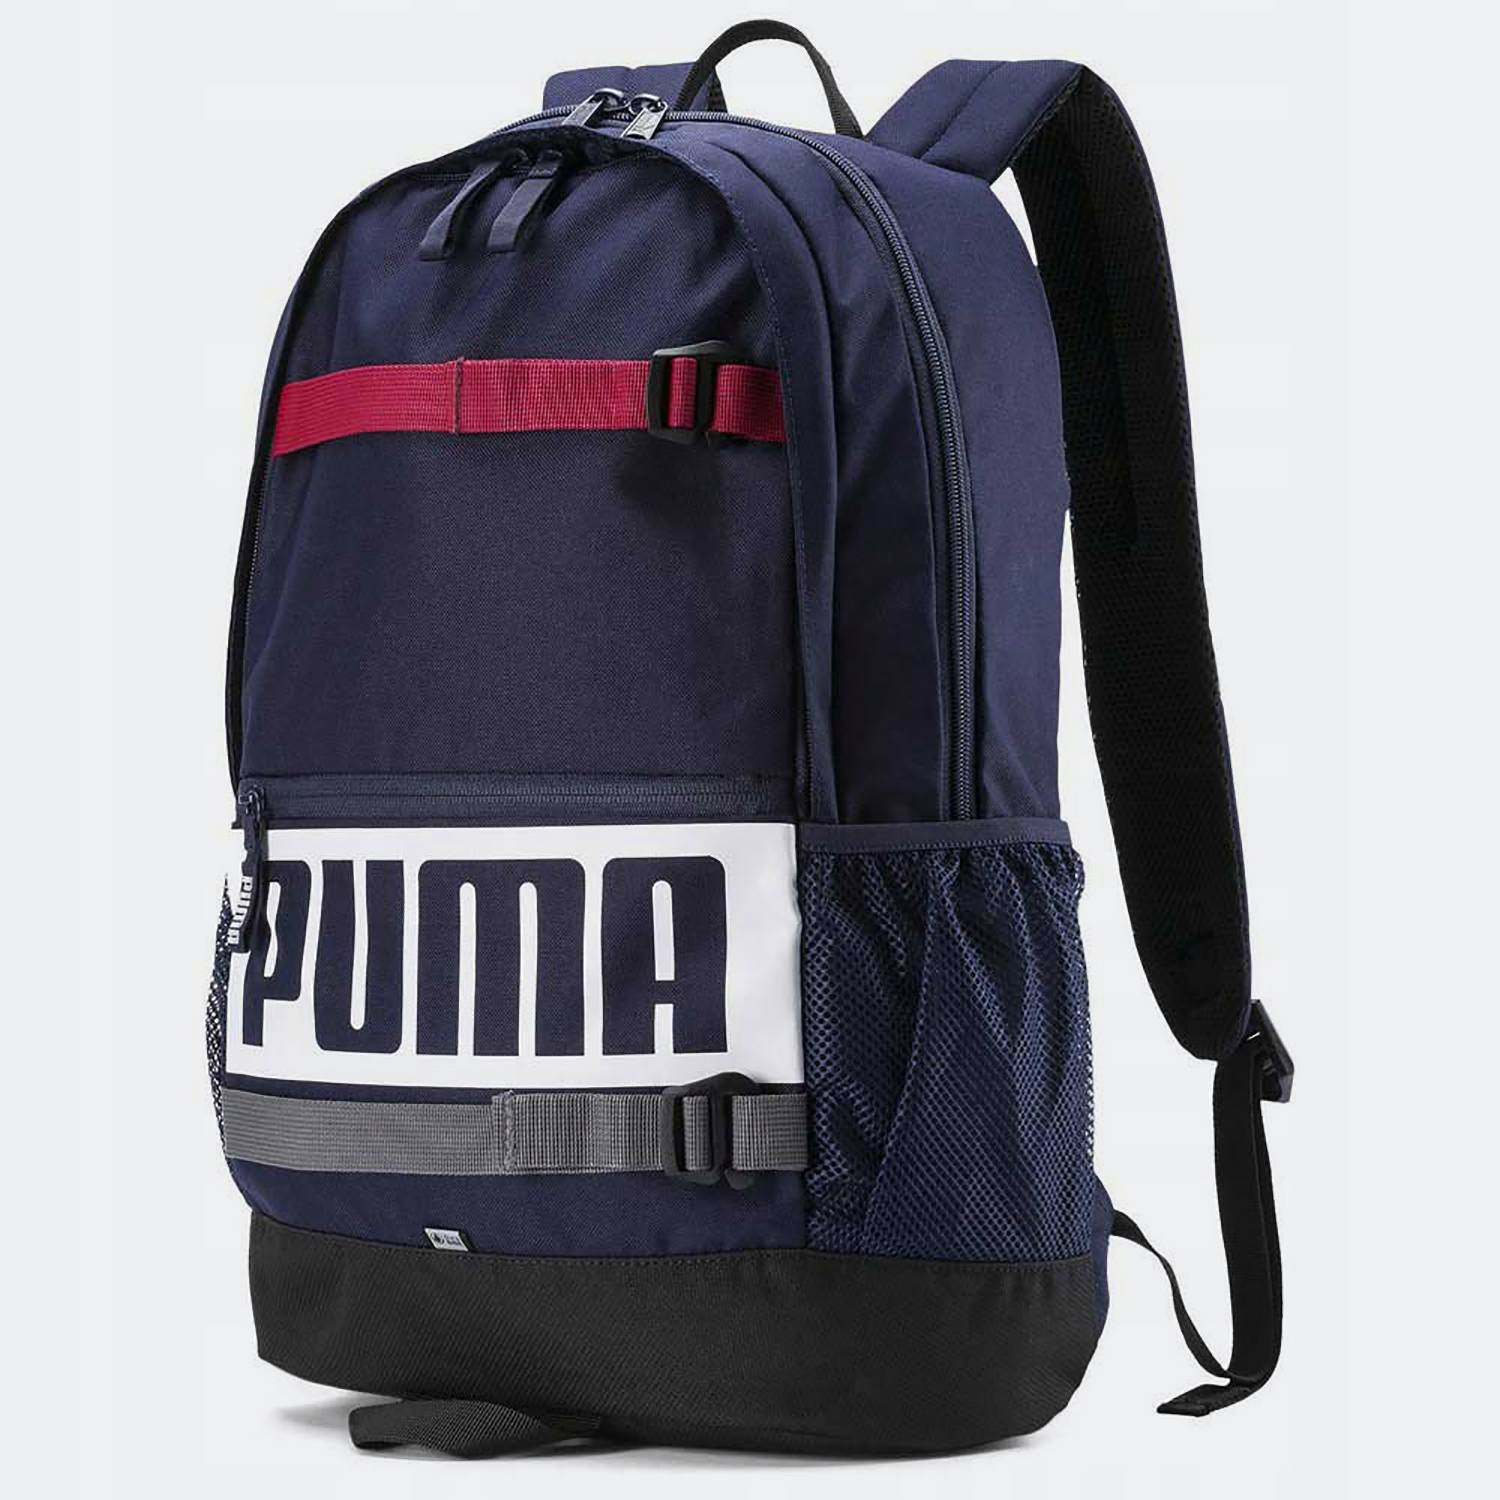 Puma Deck Backpack (9000034245_4779)